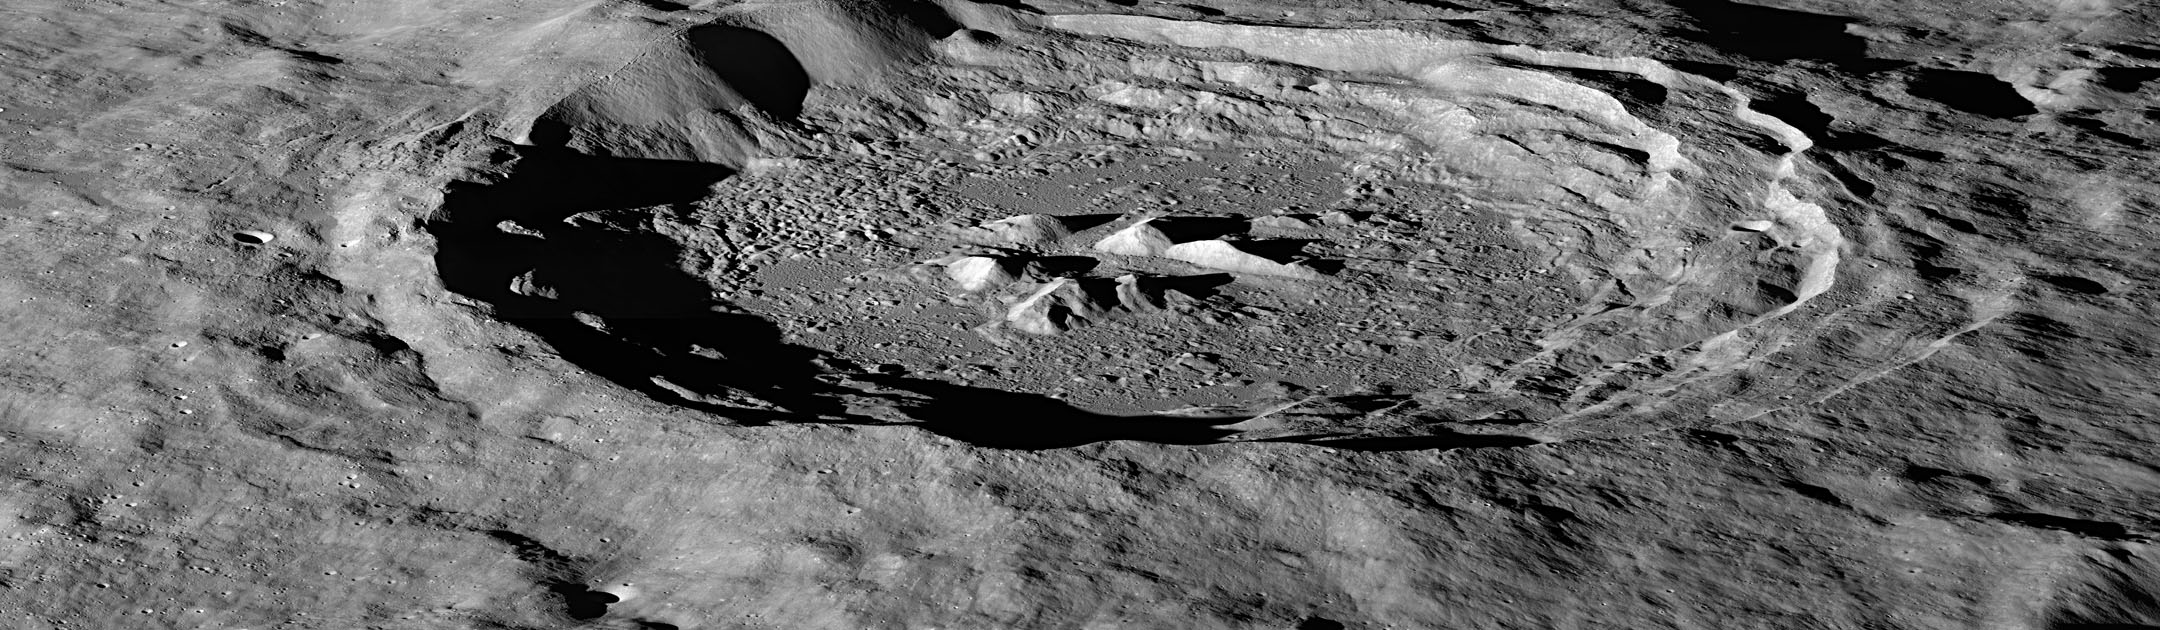 moon pigeons nasa undiscovered files - photo #19